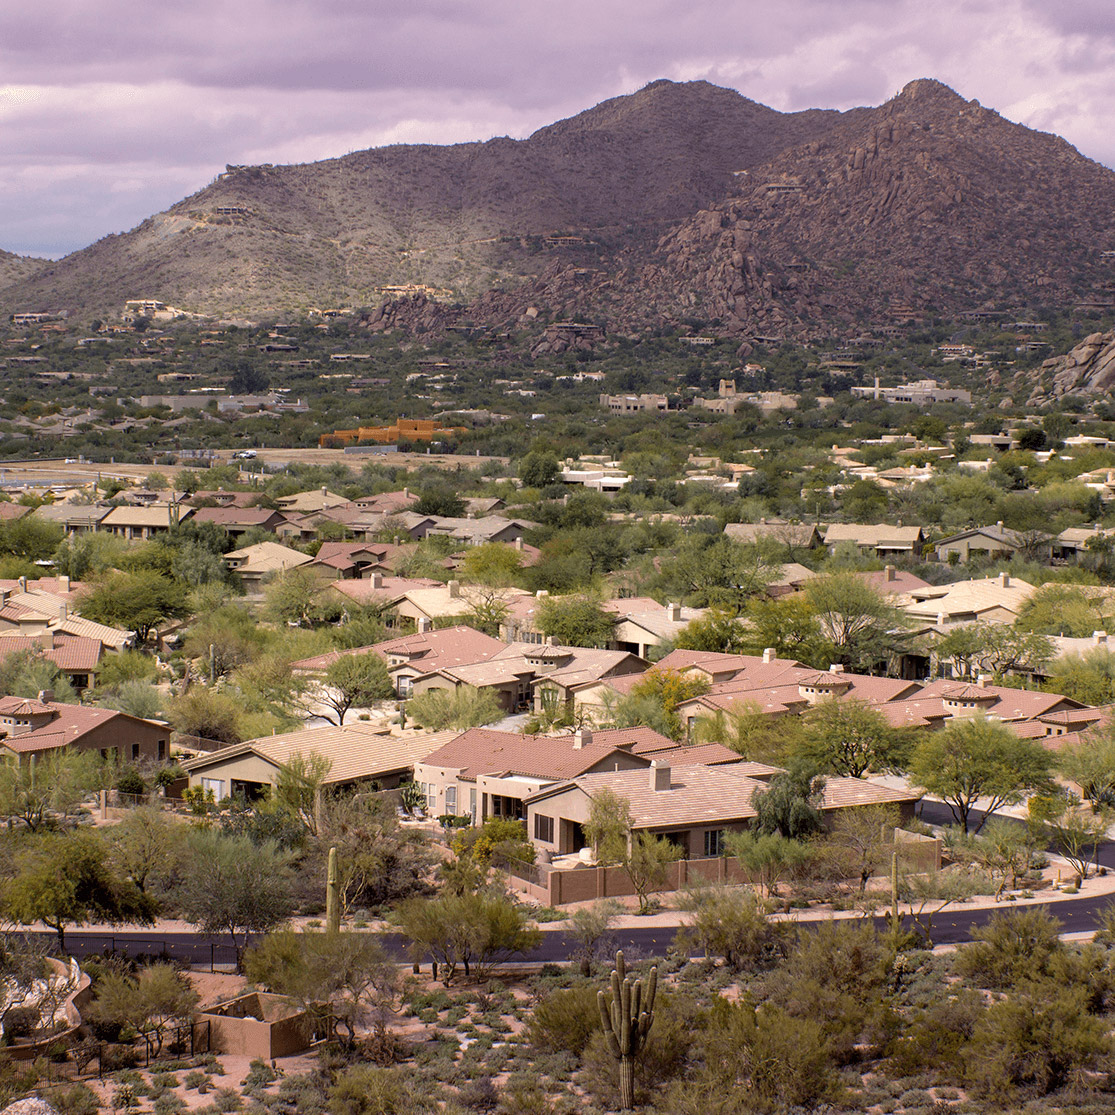 Phoenix valley homes with a mountain.